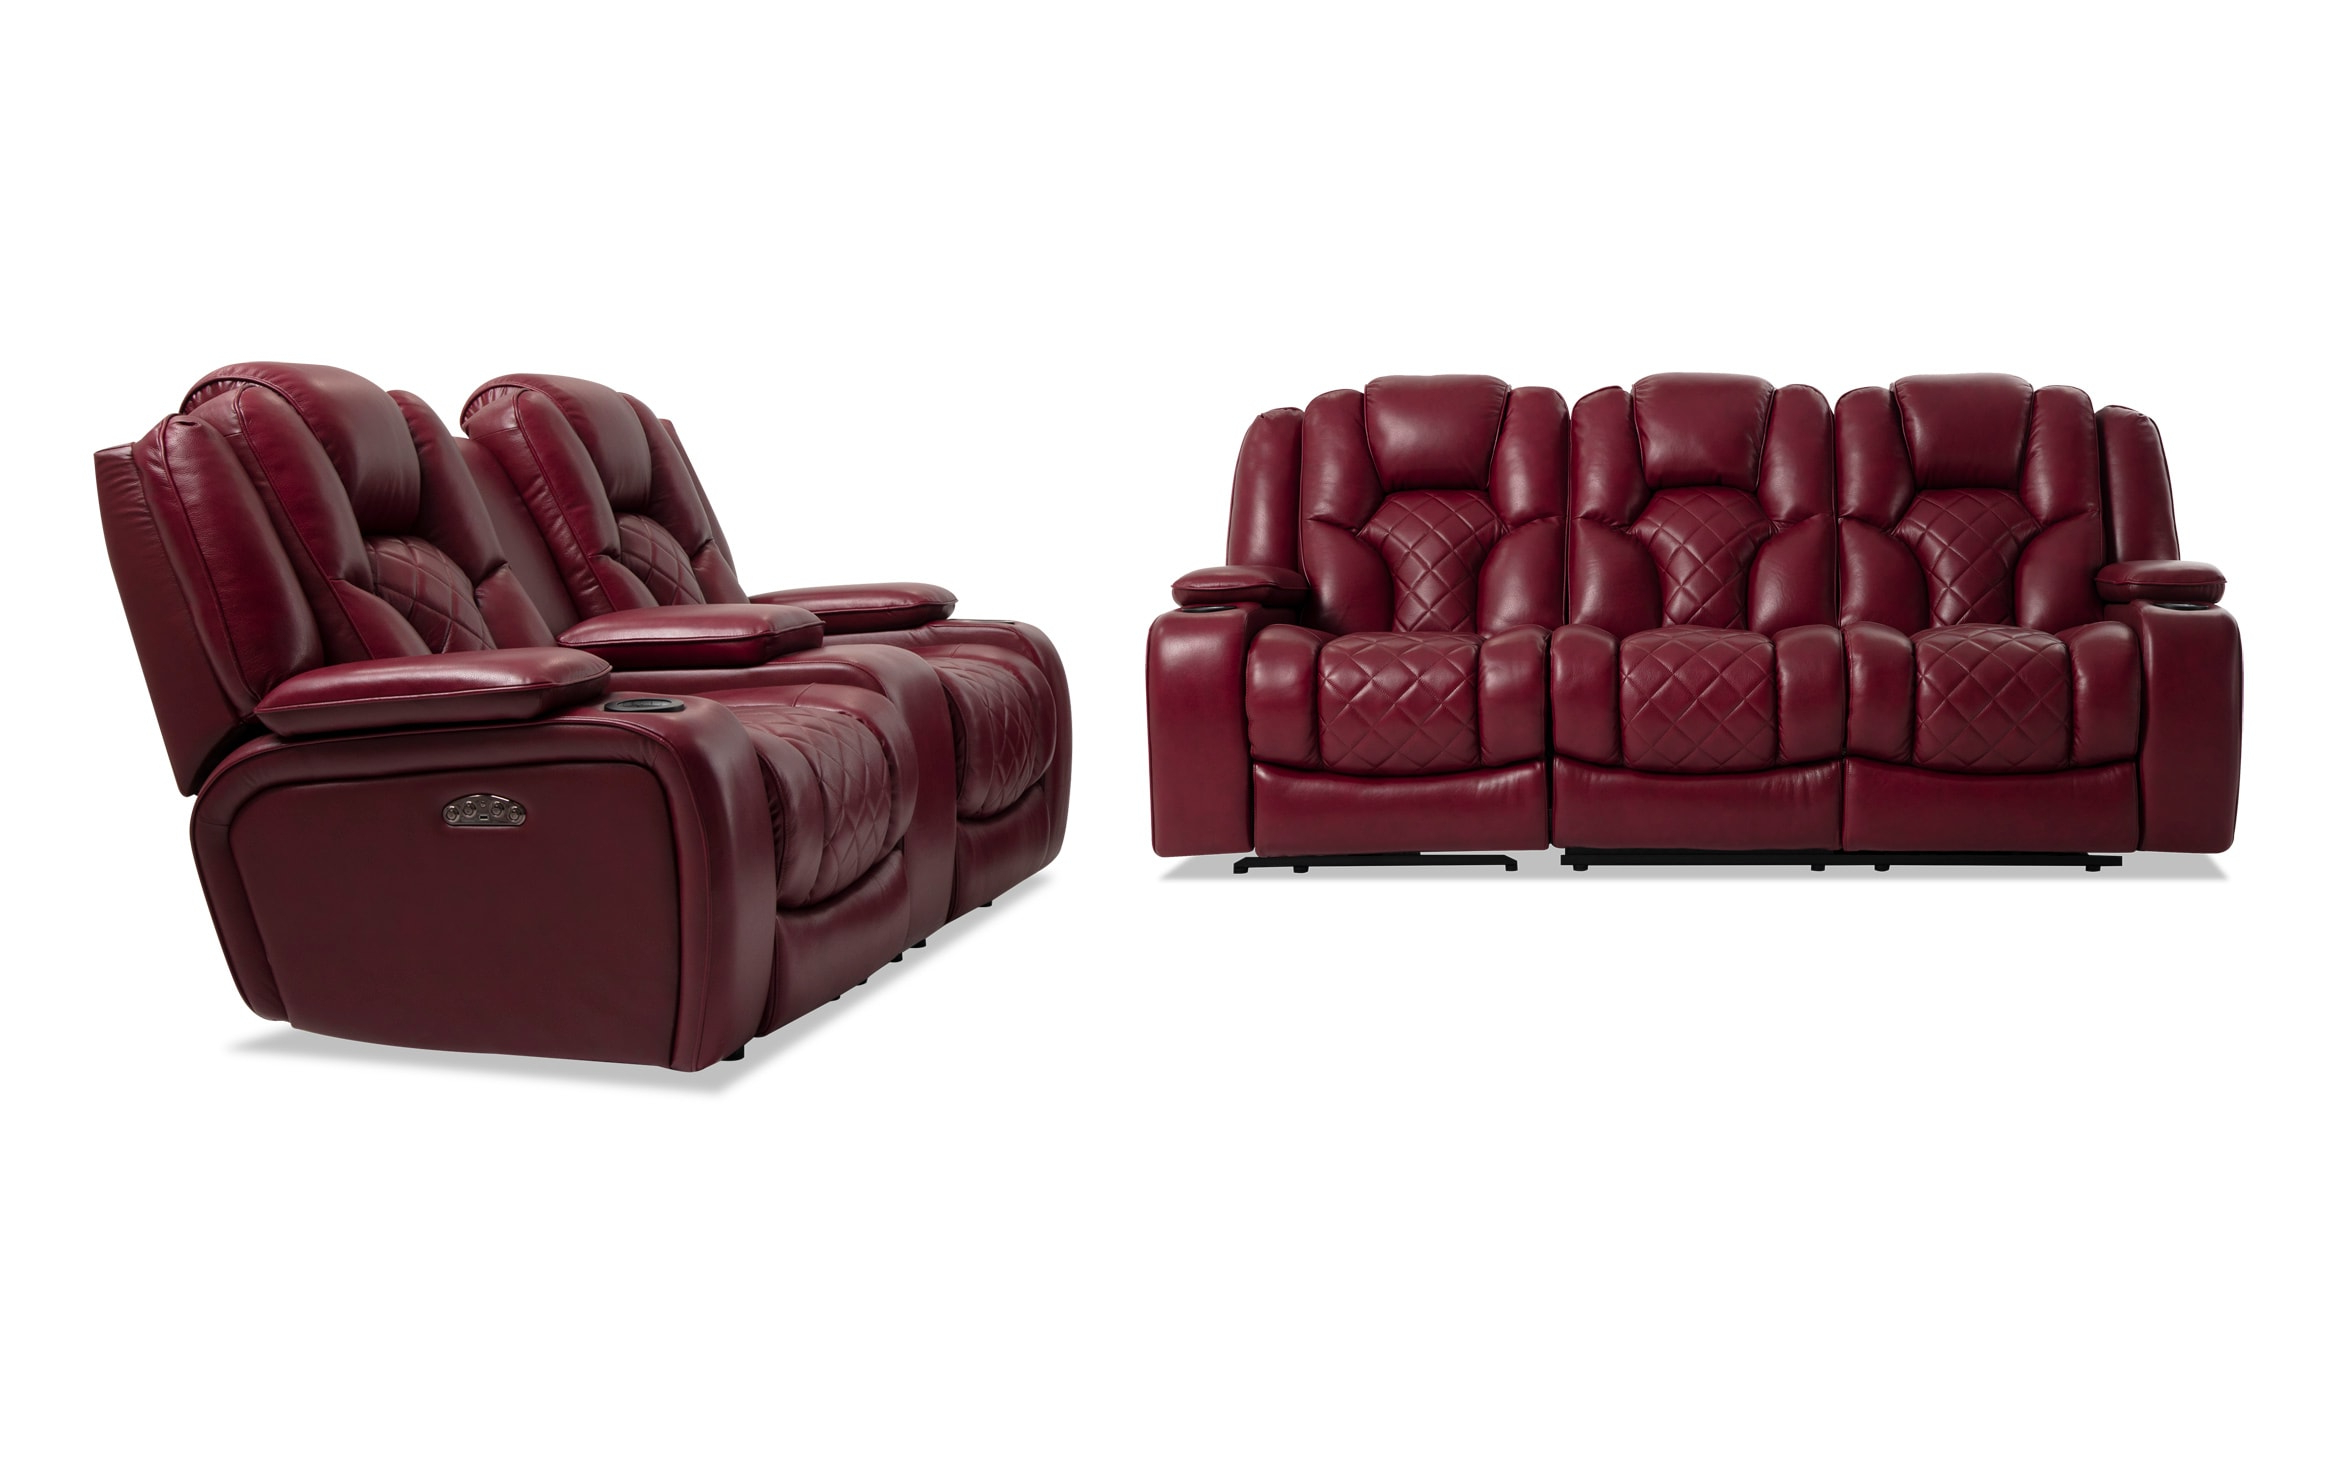 Widely Used Panther Fire Leather Dual Power Reclining Sofa – Latest Intended For Panther Fire Leather Dual Power Reclining Sofas (View 5 of 20)